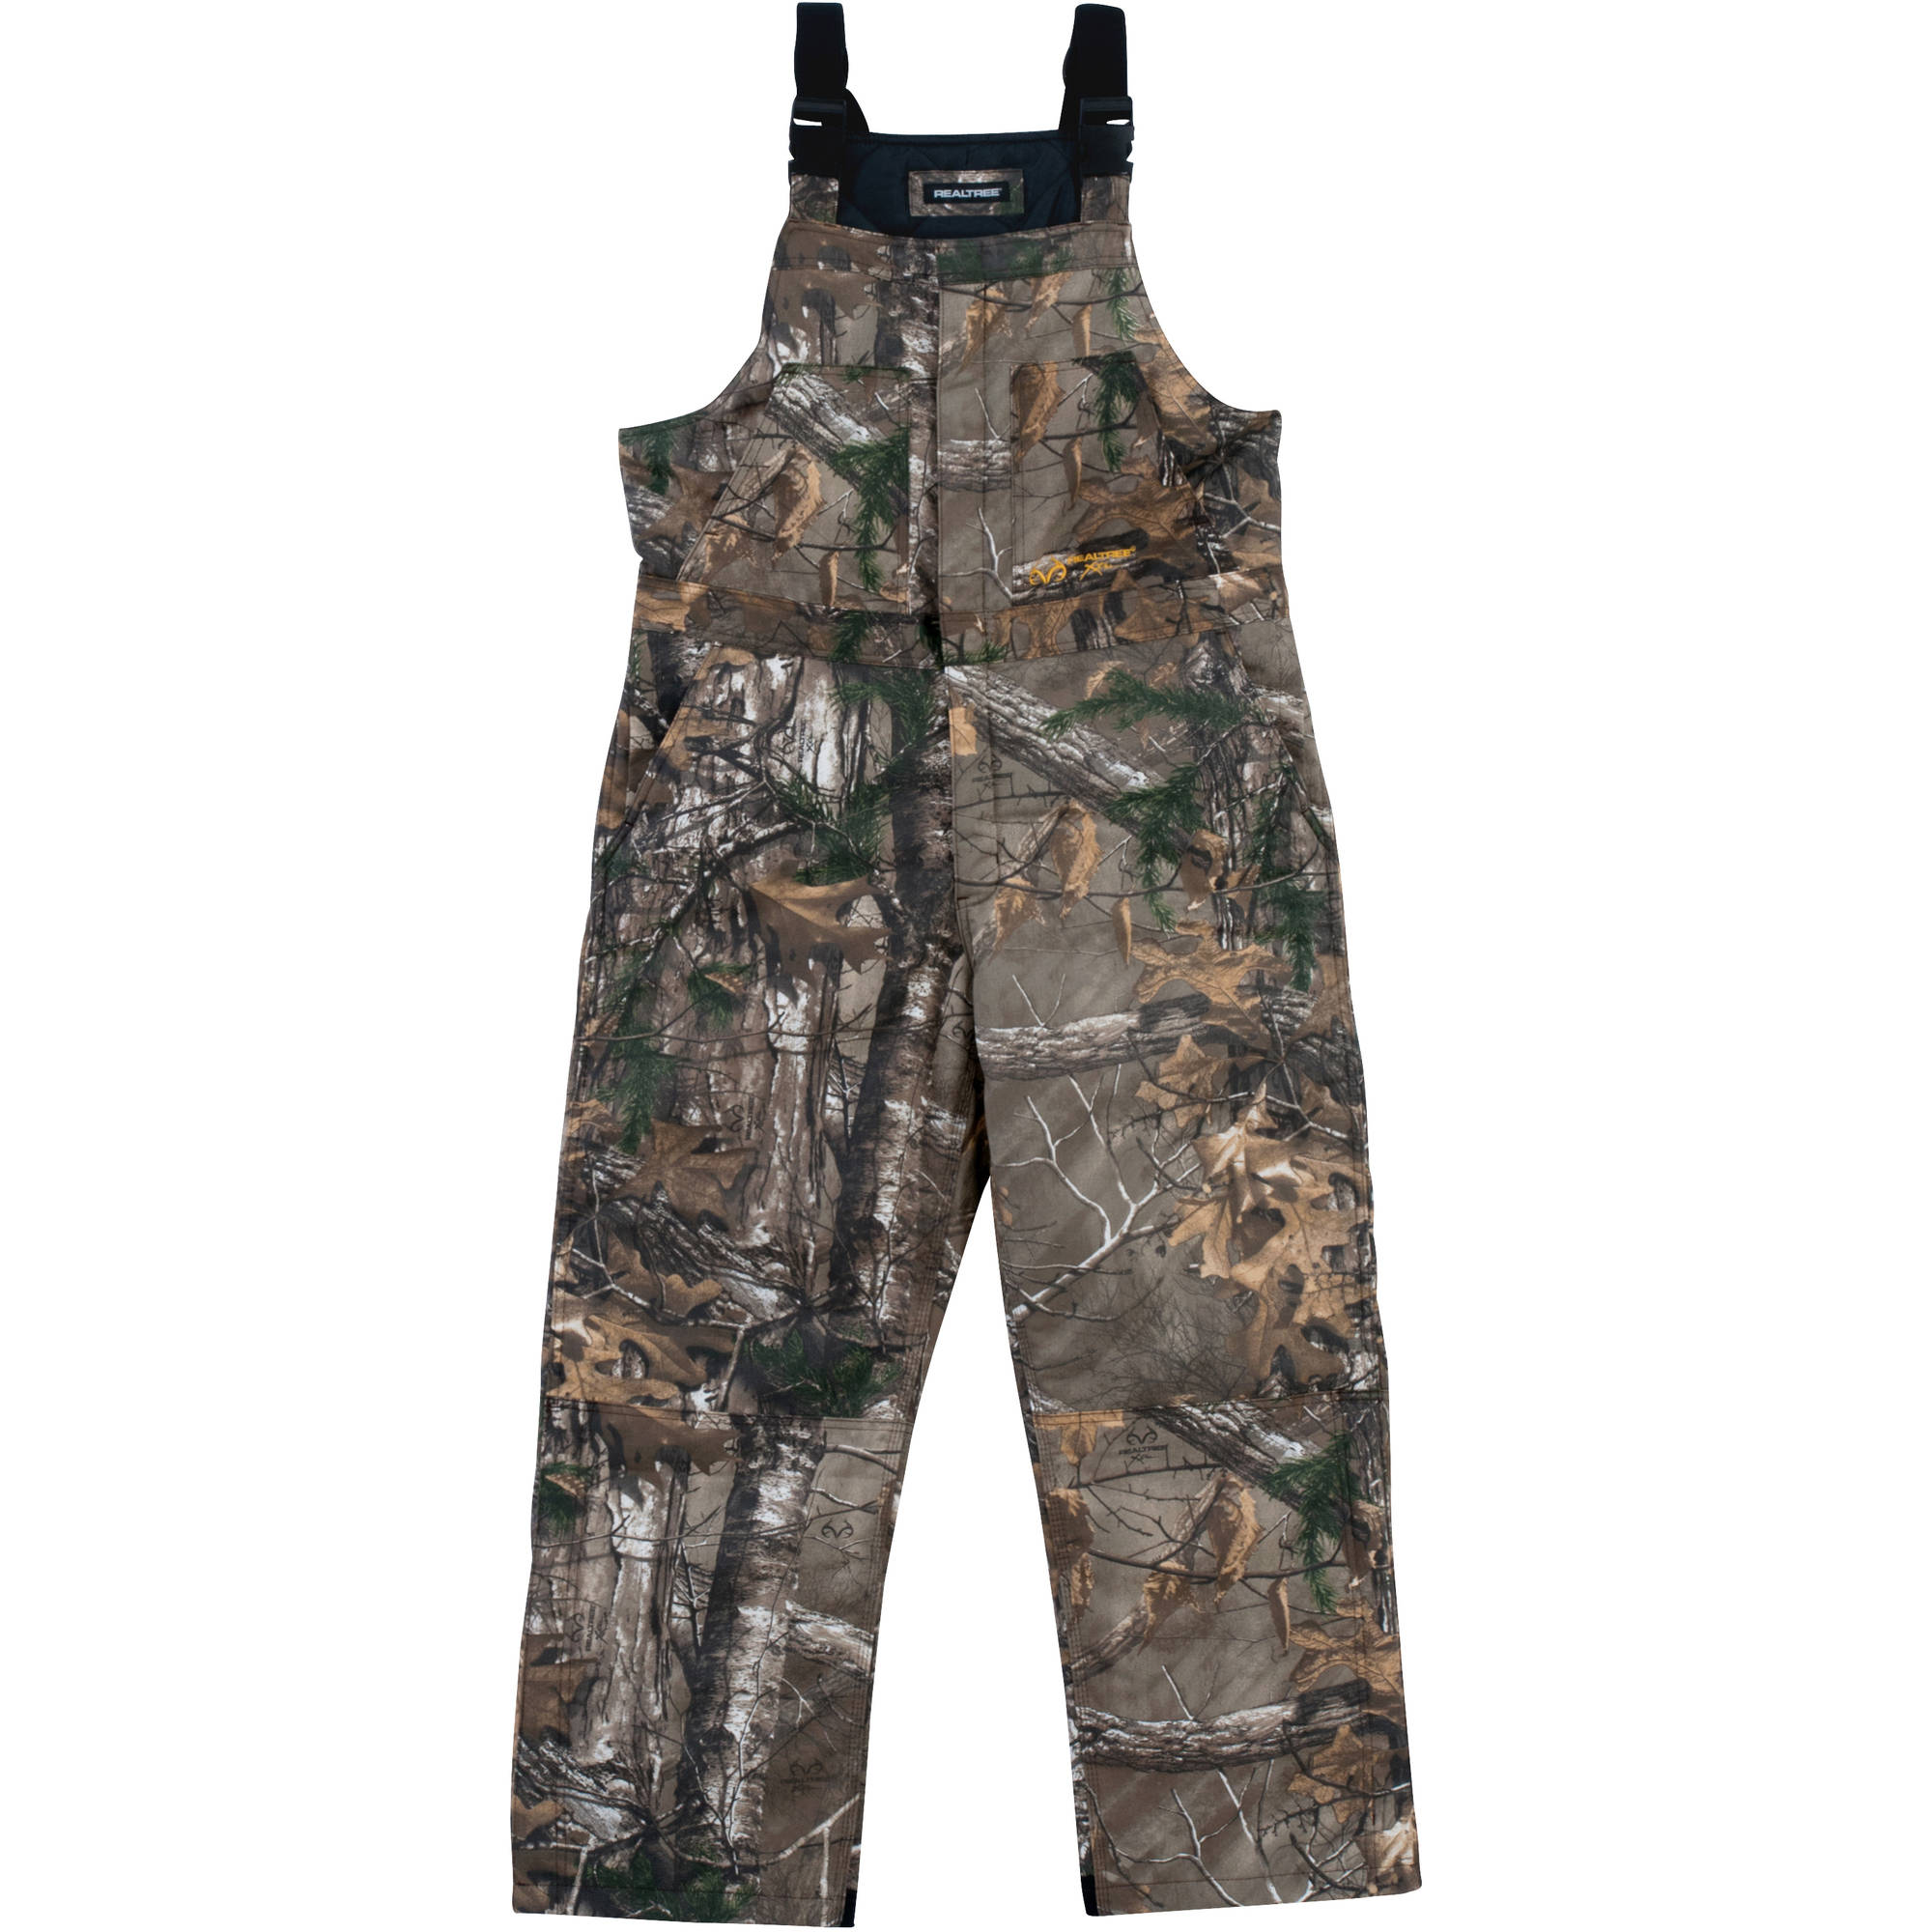 Realtree Men's Insulated Bib, Realtree Xtra